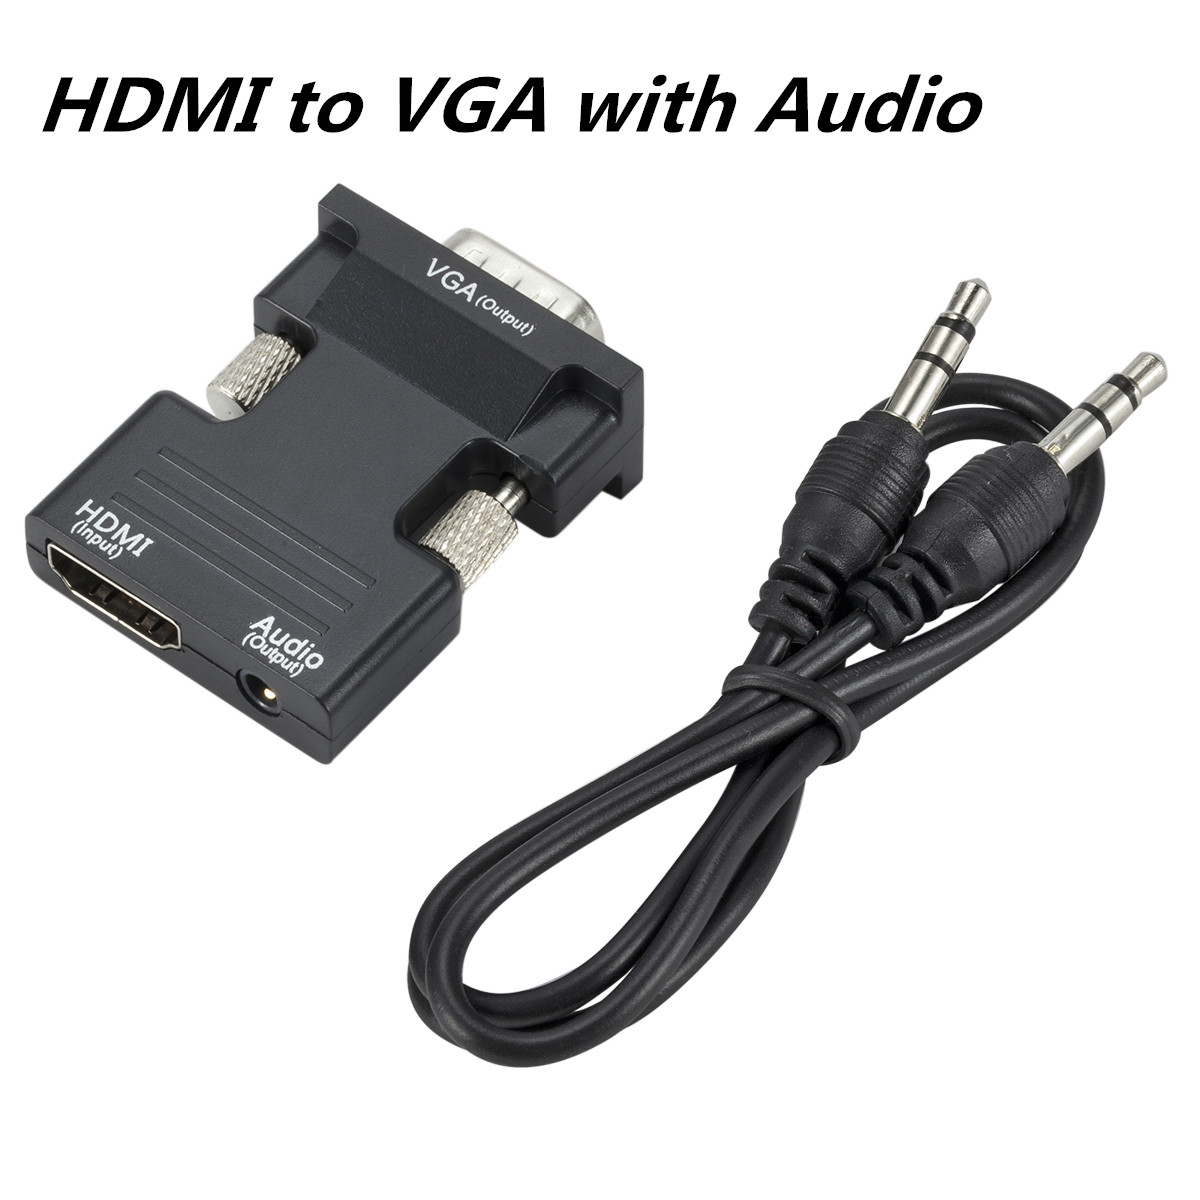 VGA To HDMI Adapter Converter With Audio Support 1080P HDMI To VGA Adapter Converter For PC Laptop TV Box Projector